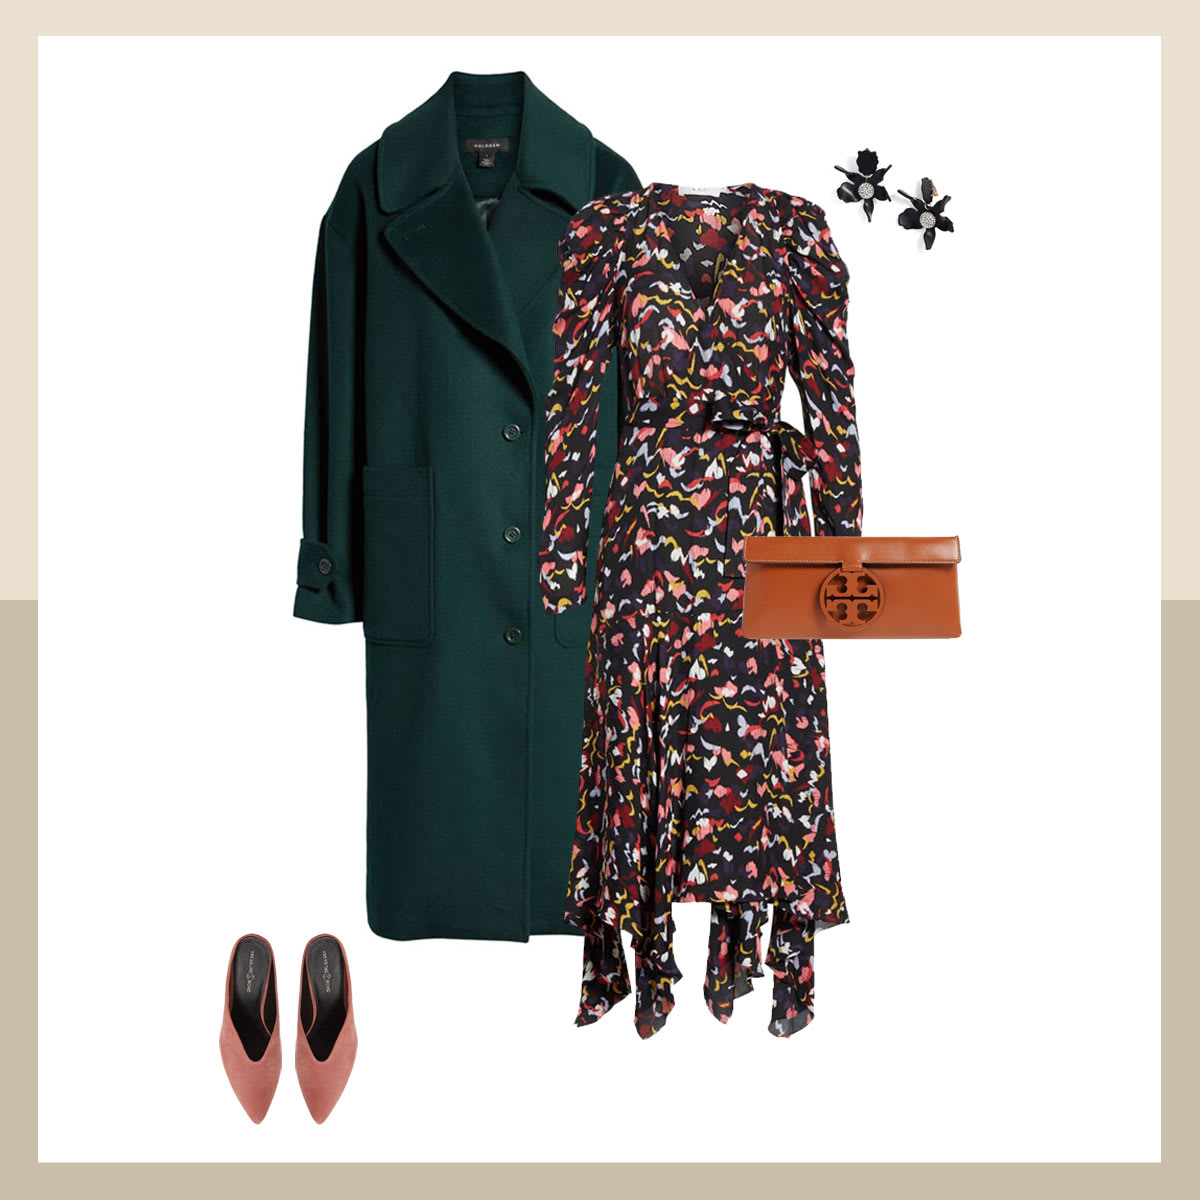 Green jacket with ALC floral dress